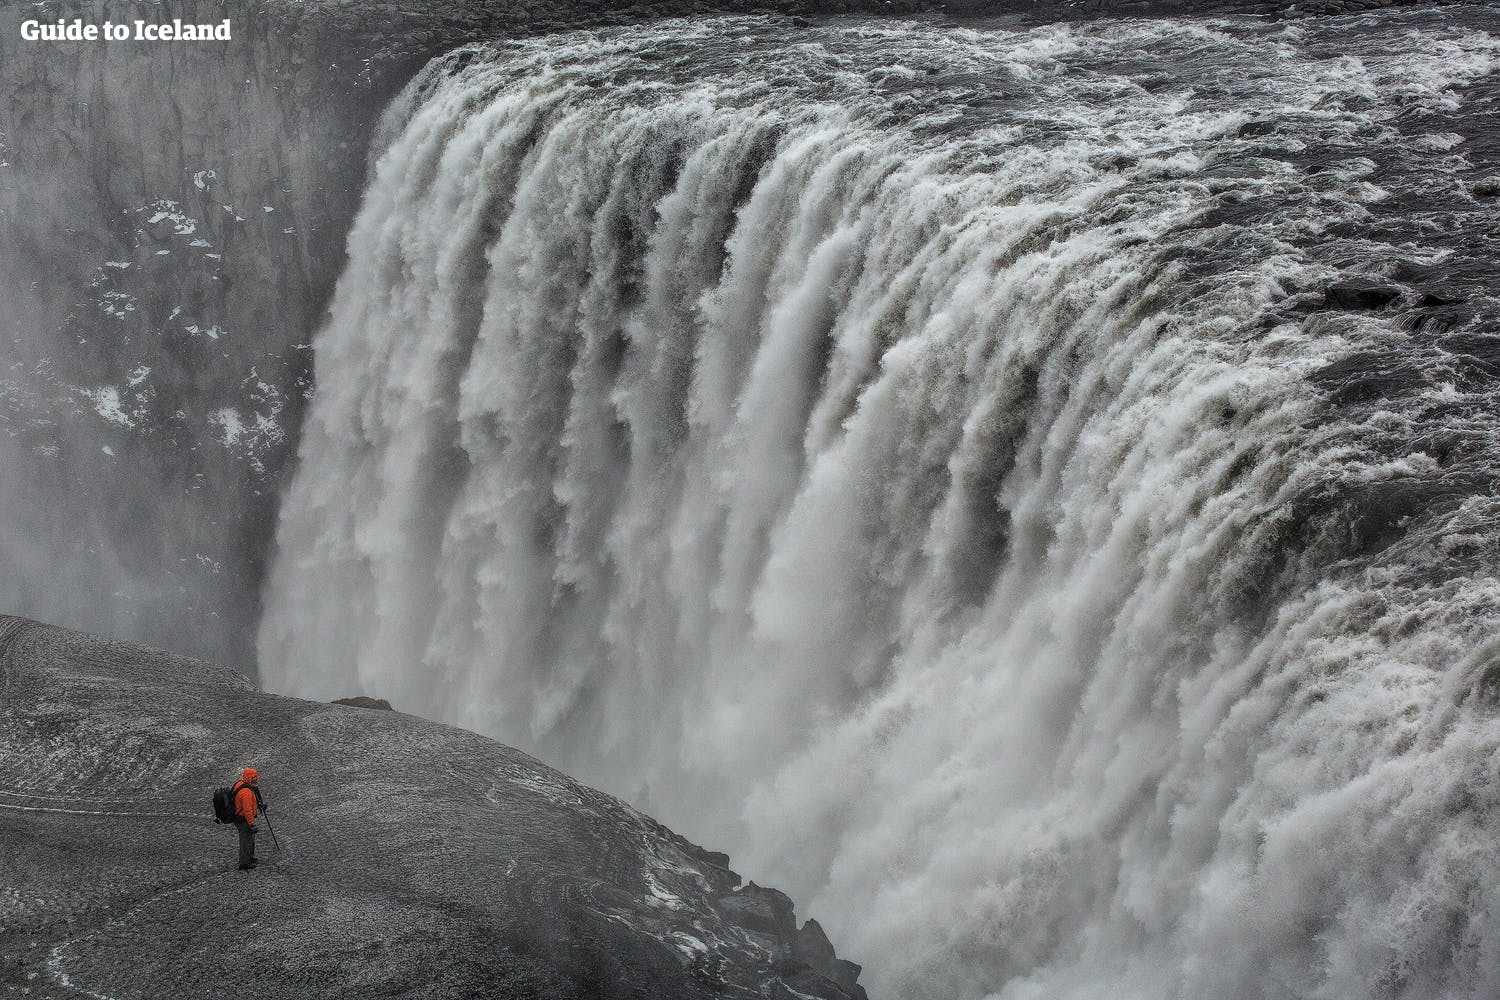 A photographer captures the sheer might of Dettifoss waterfall.